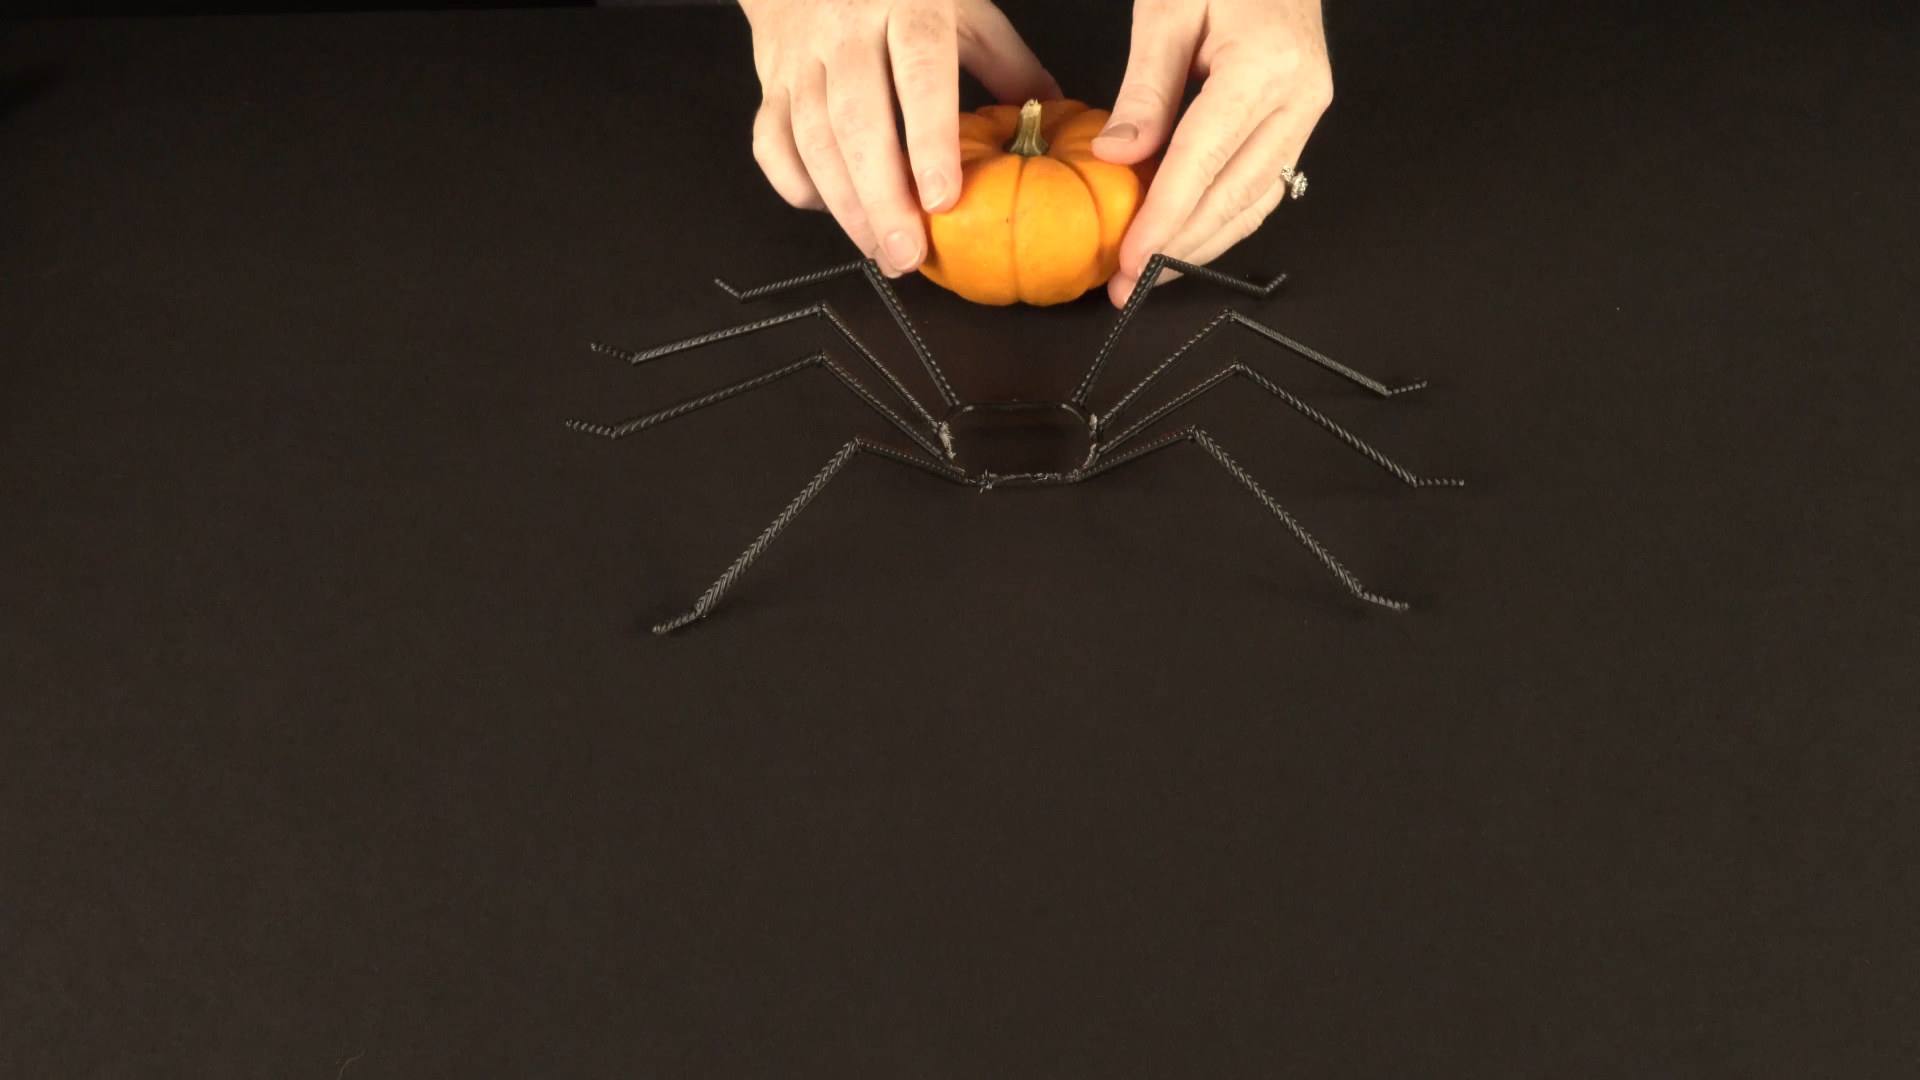 Halloween crafts with color-changing led tea lights - spider step 1